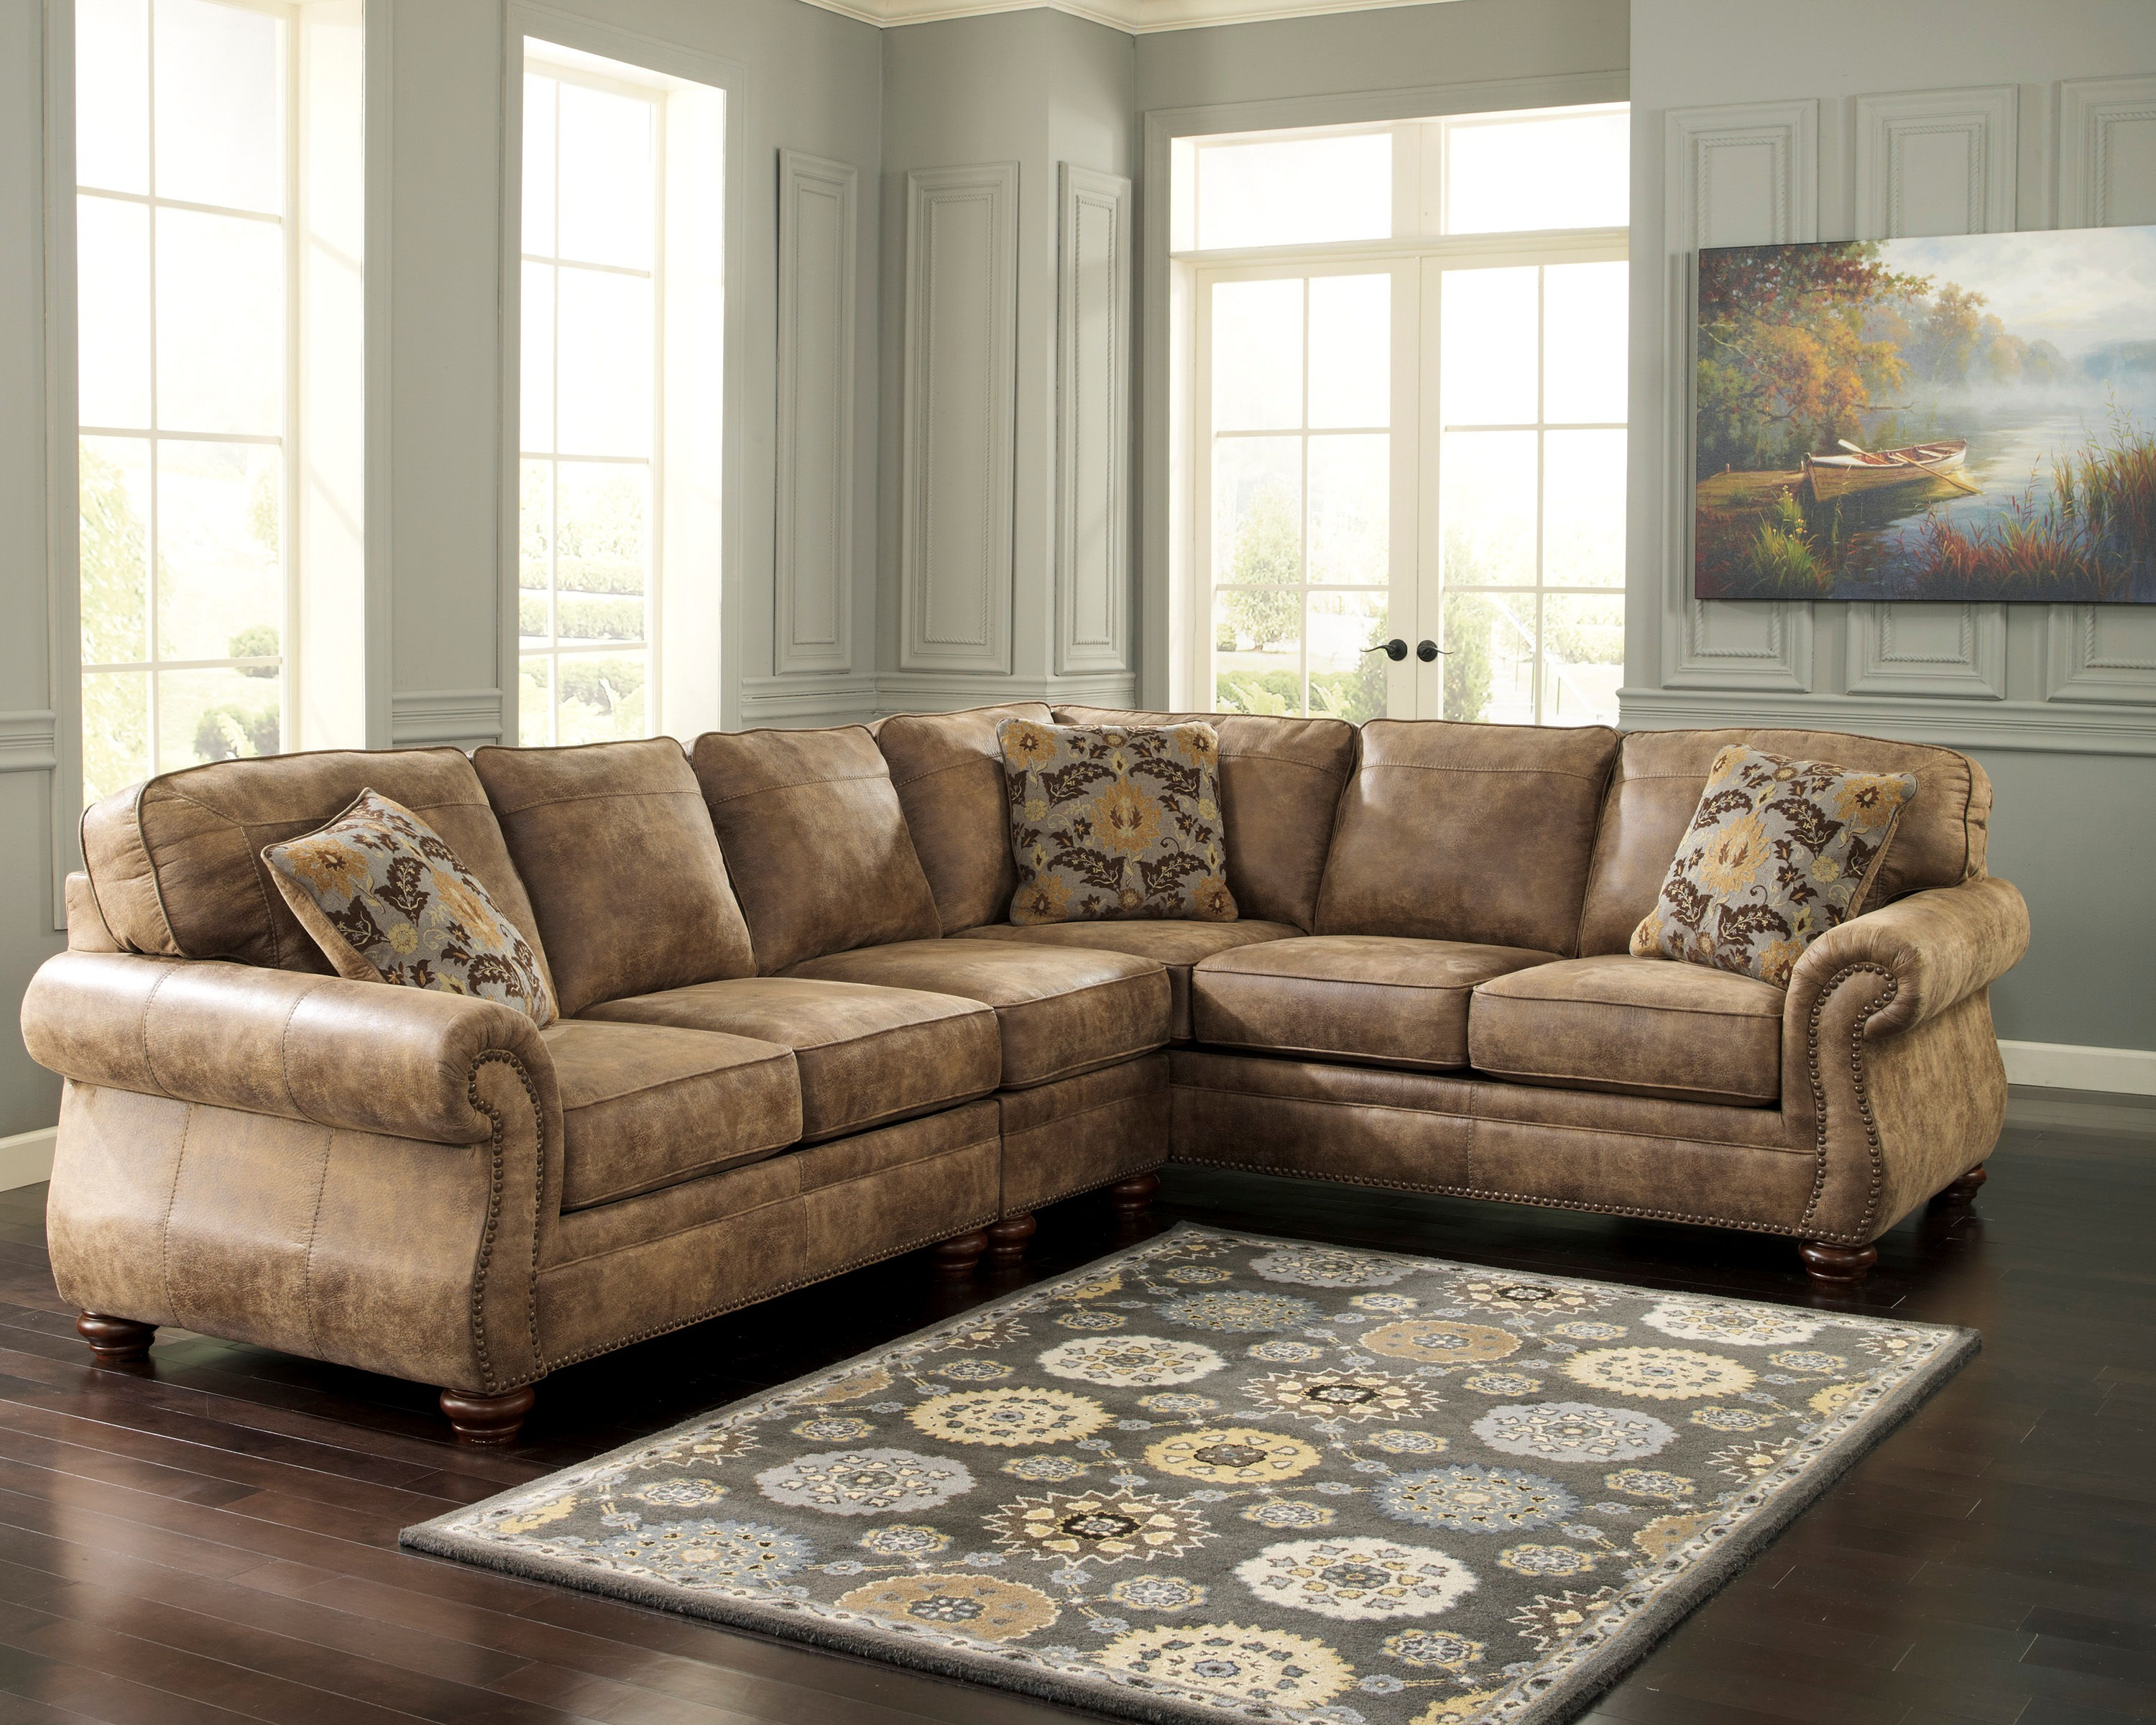 Turdur 2 Piece Sectionals With Raf Loveseat Pertaining To Most Up To Date Laf Sofa Raf Loveseat (View 6 of 20)